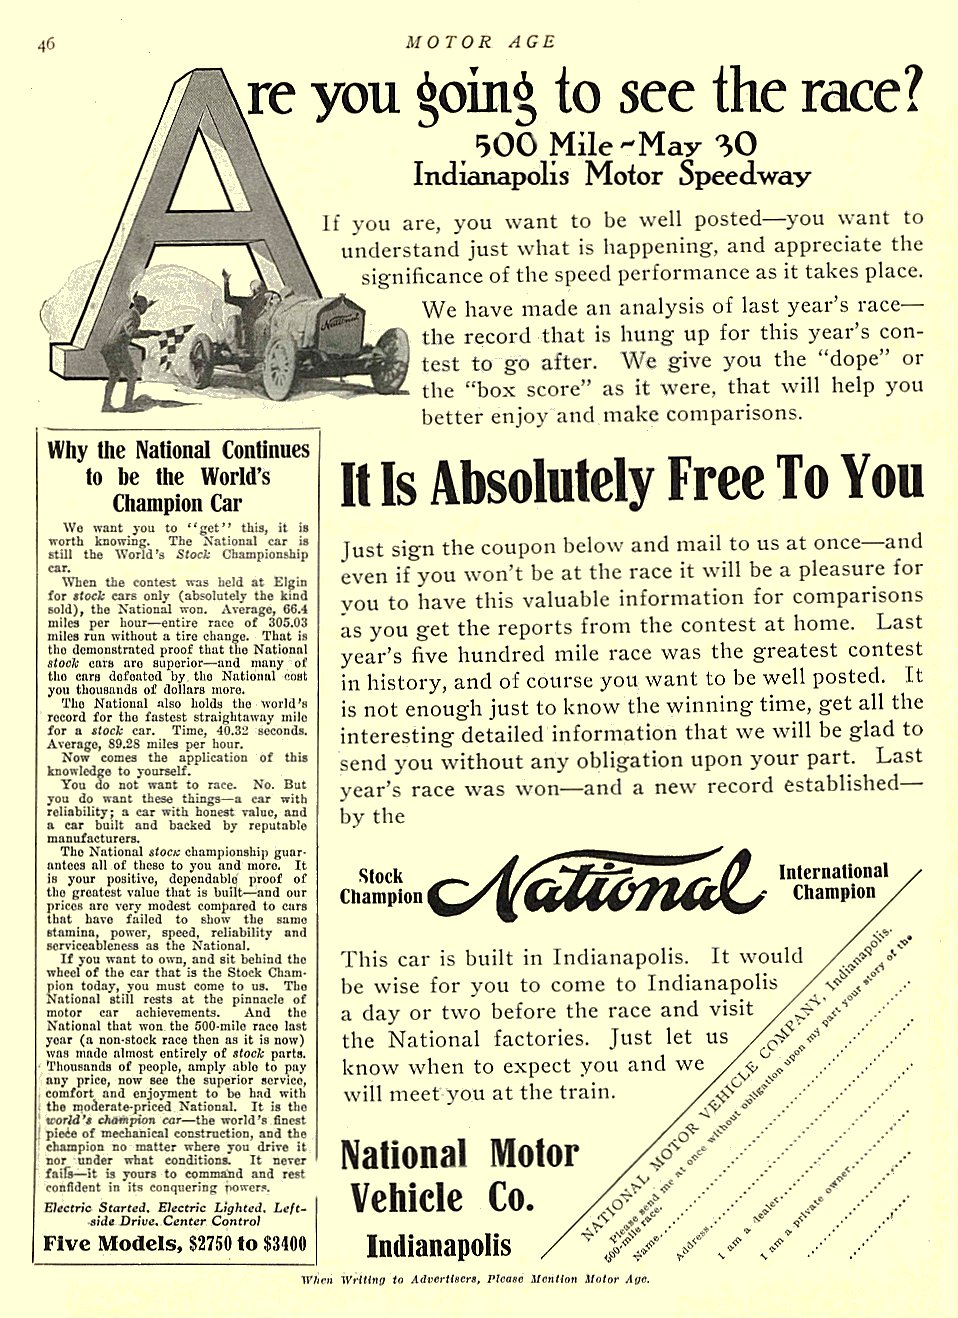 1913 5 15 NATIONAL Are you going to see the race? National Motor Vehicle Co. Indianapolis MOTOR AGE May 15, 1913 8.5″x11.5″ University of Minnesota Library page 46